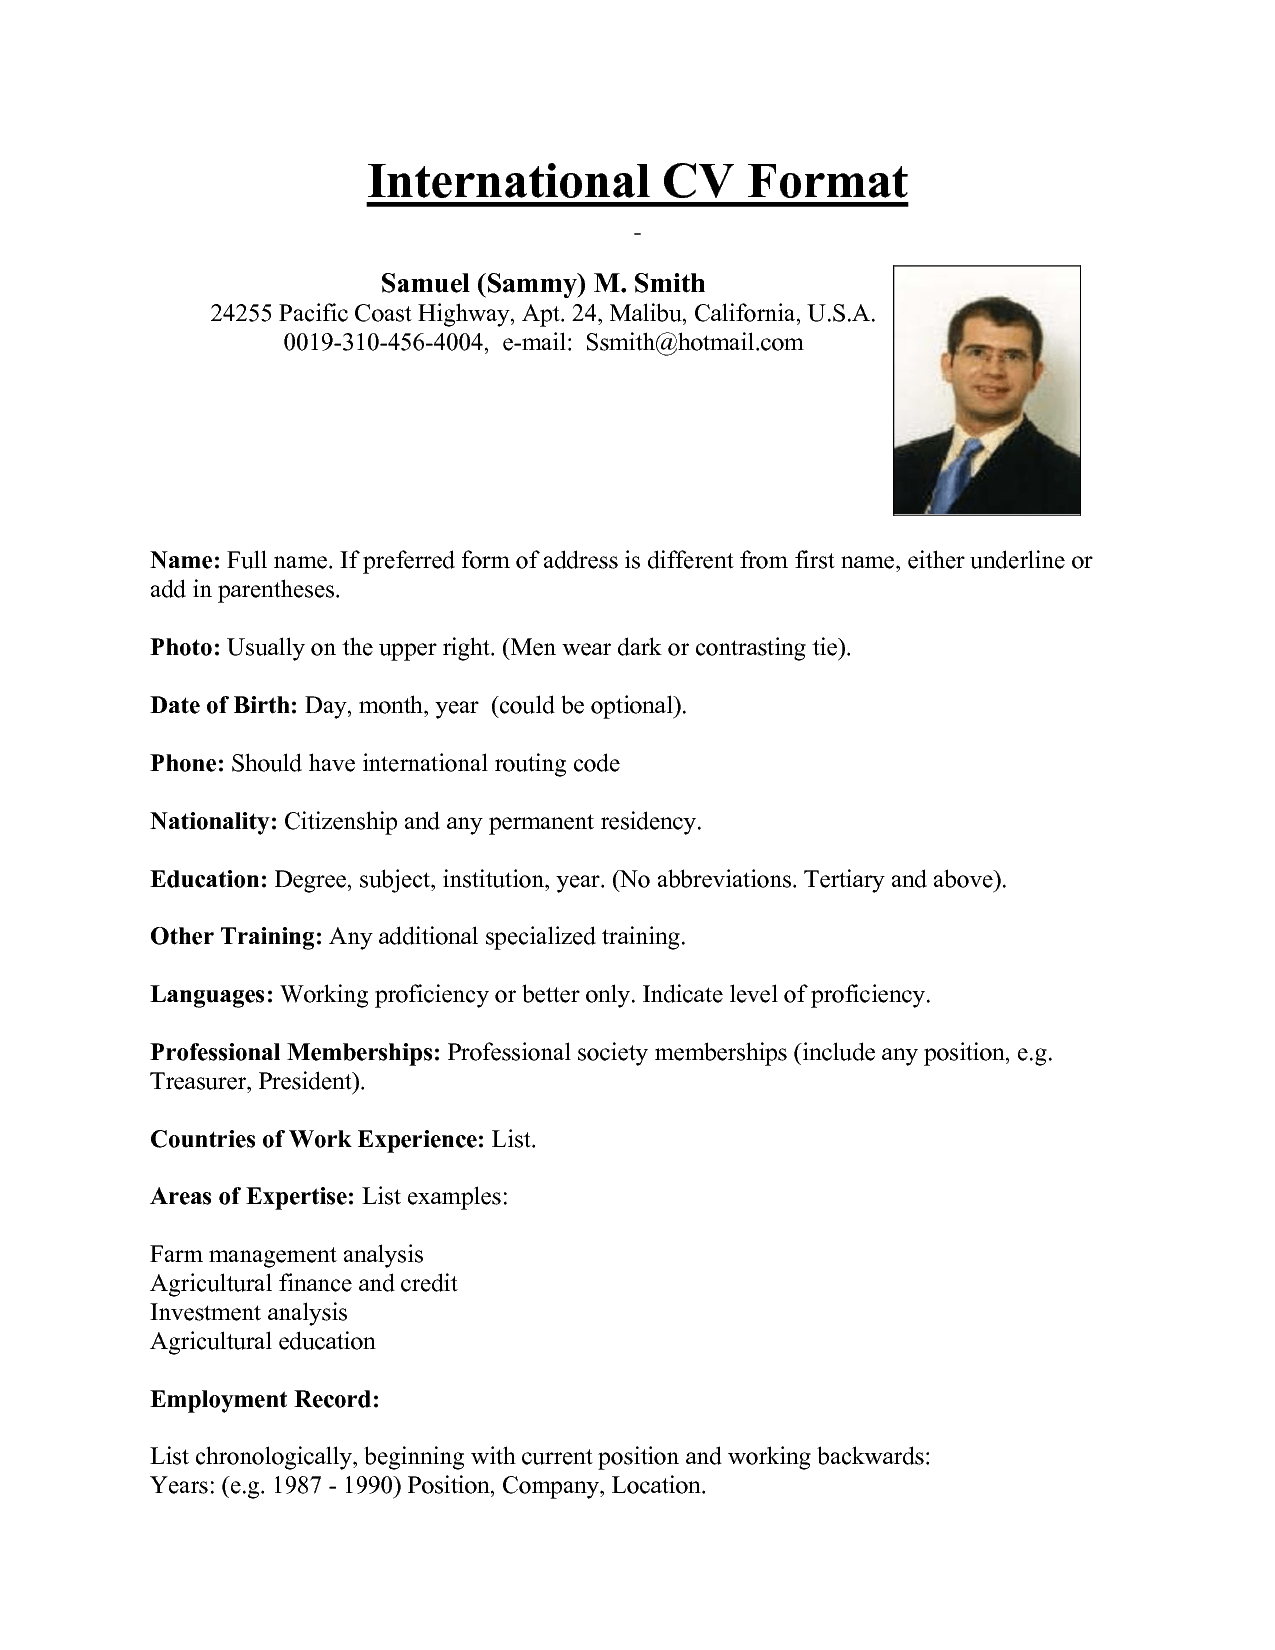 international curriculum vitae resume format